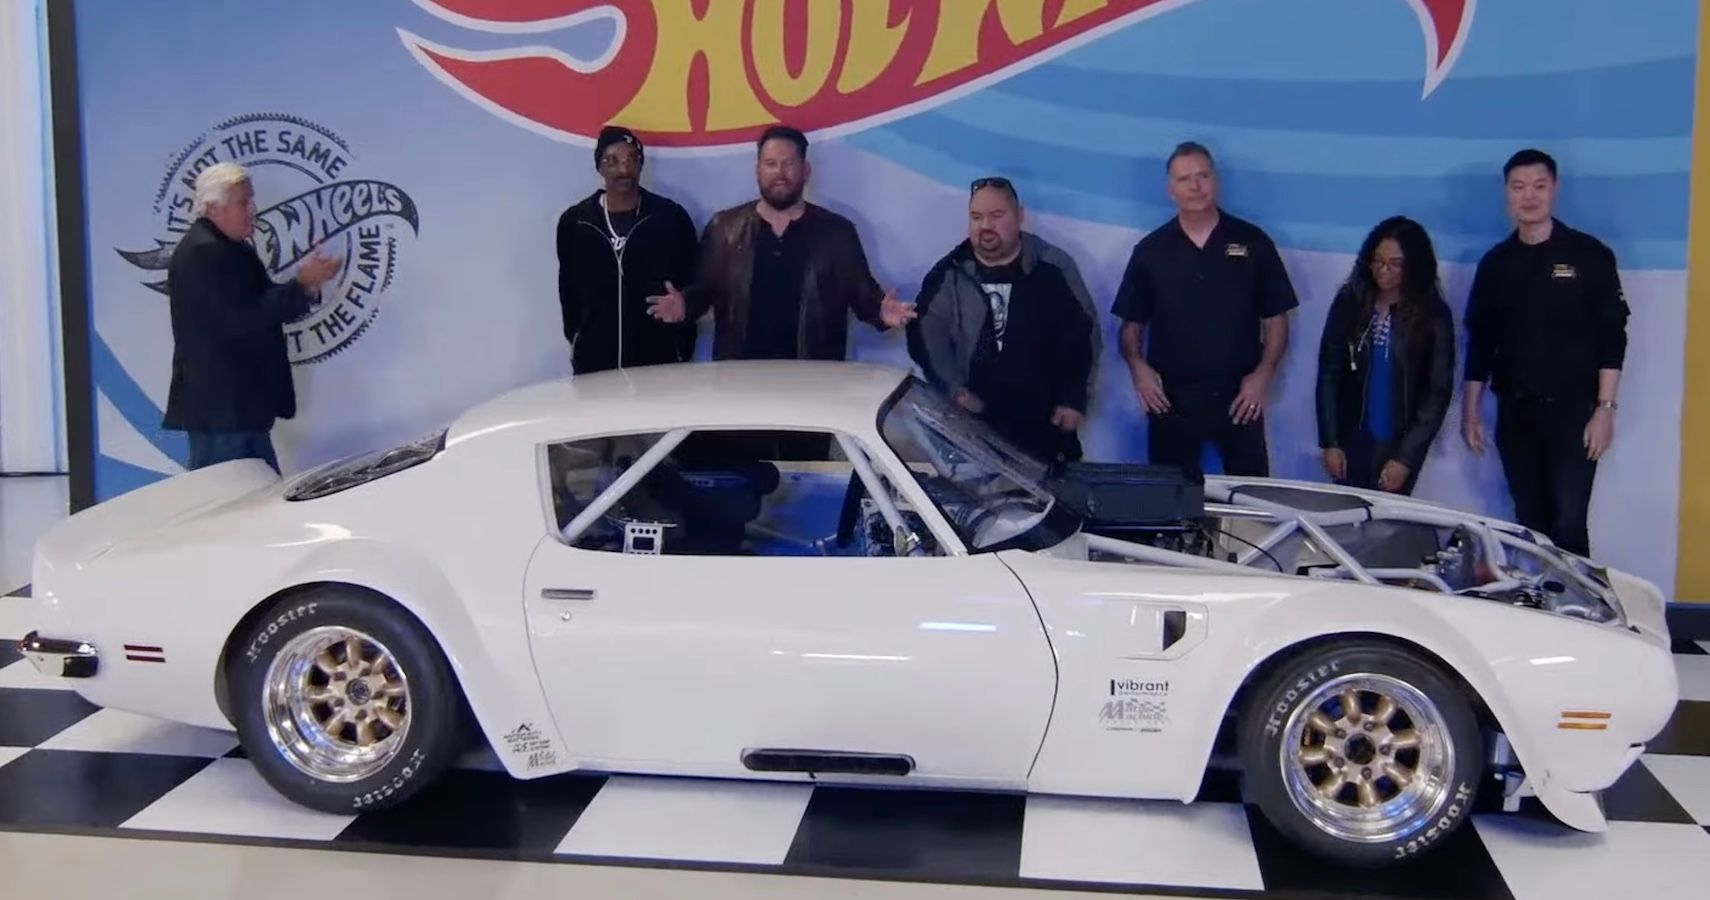 Hot Wheels Inducts This 1970 Pontiac Trans-Am Into Its Garage Of Legends